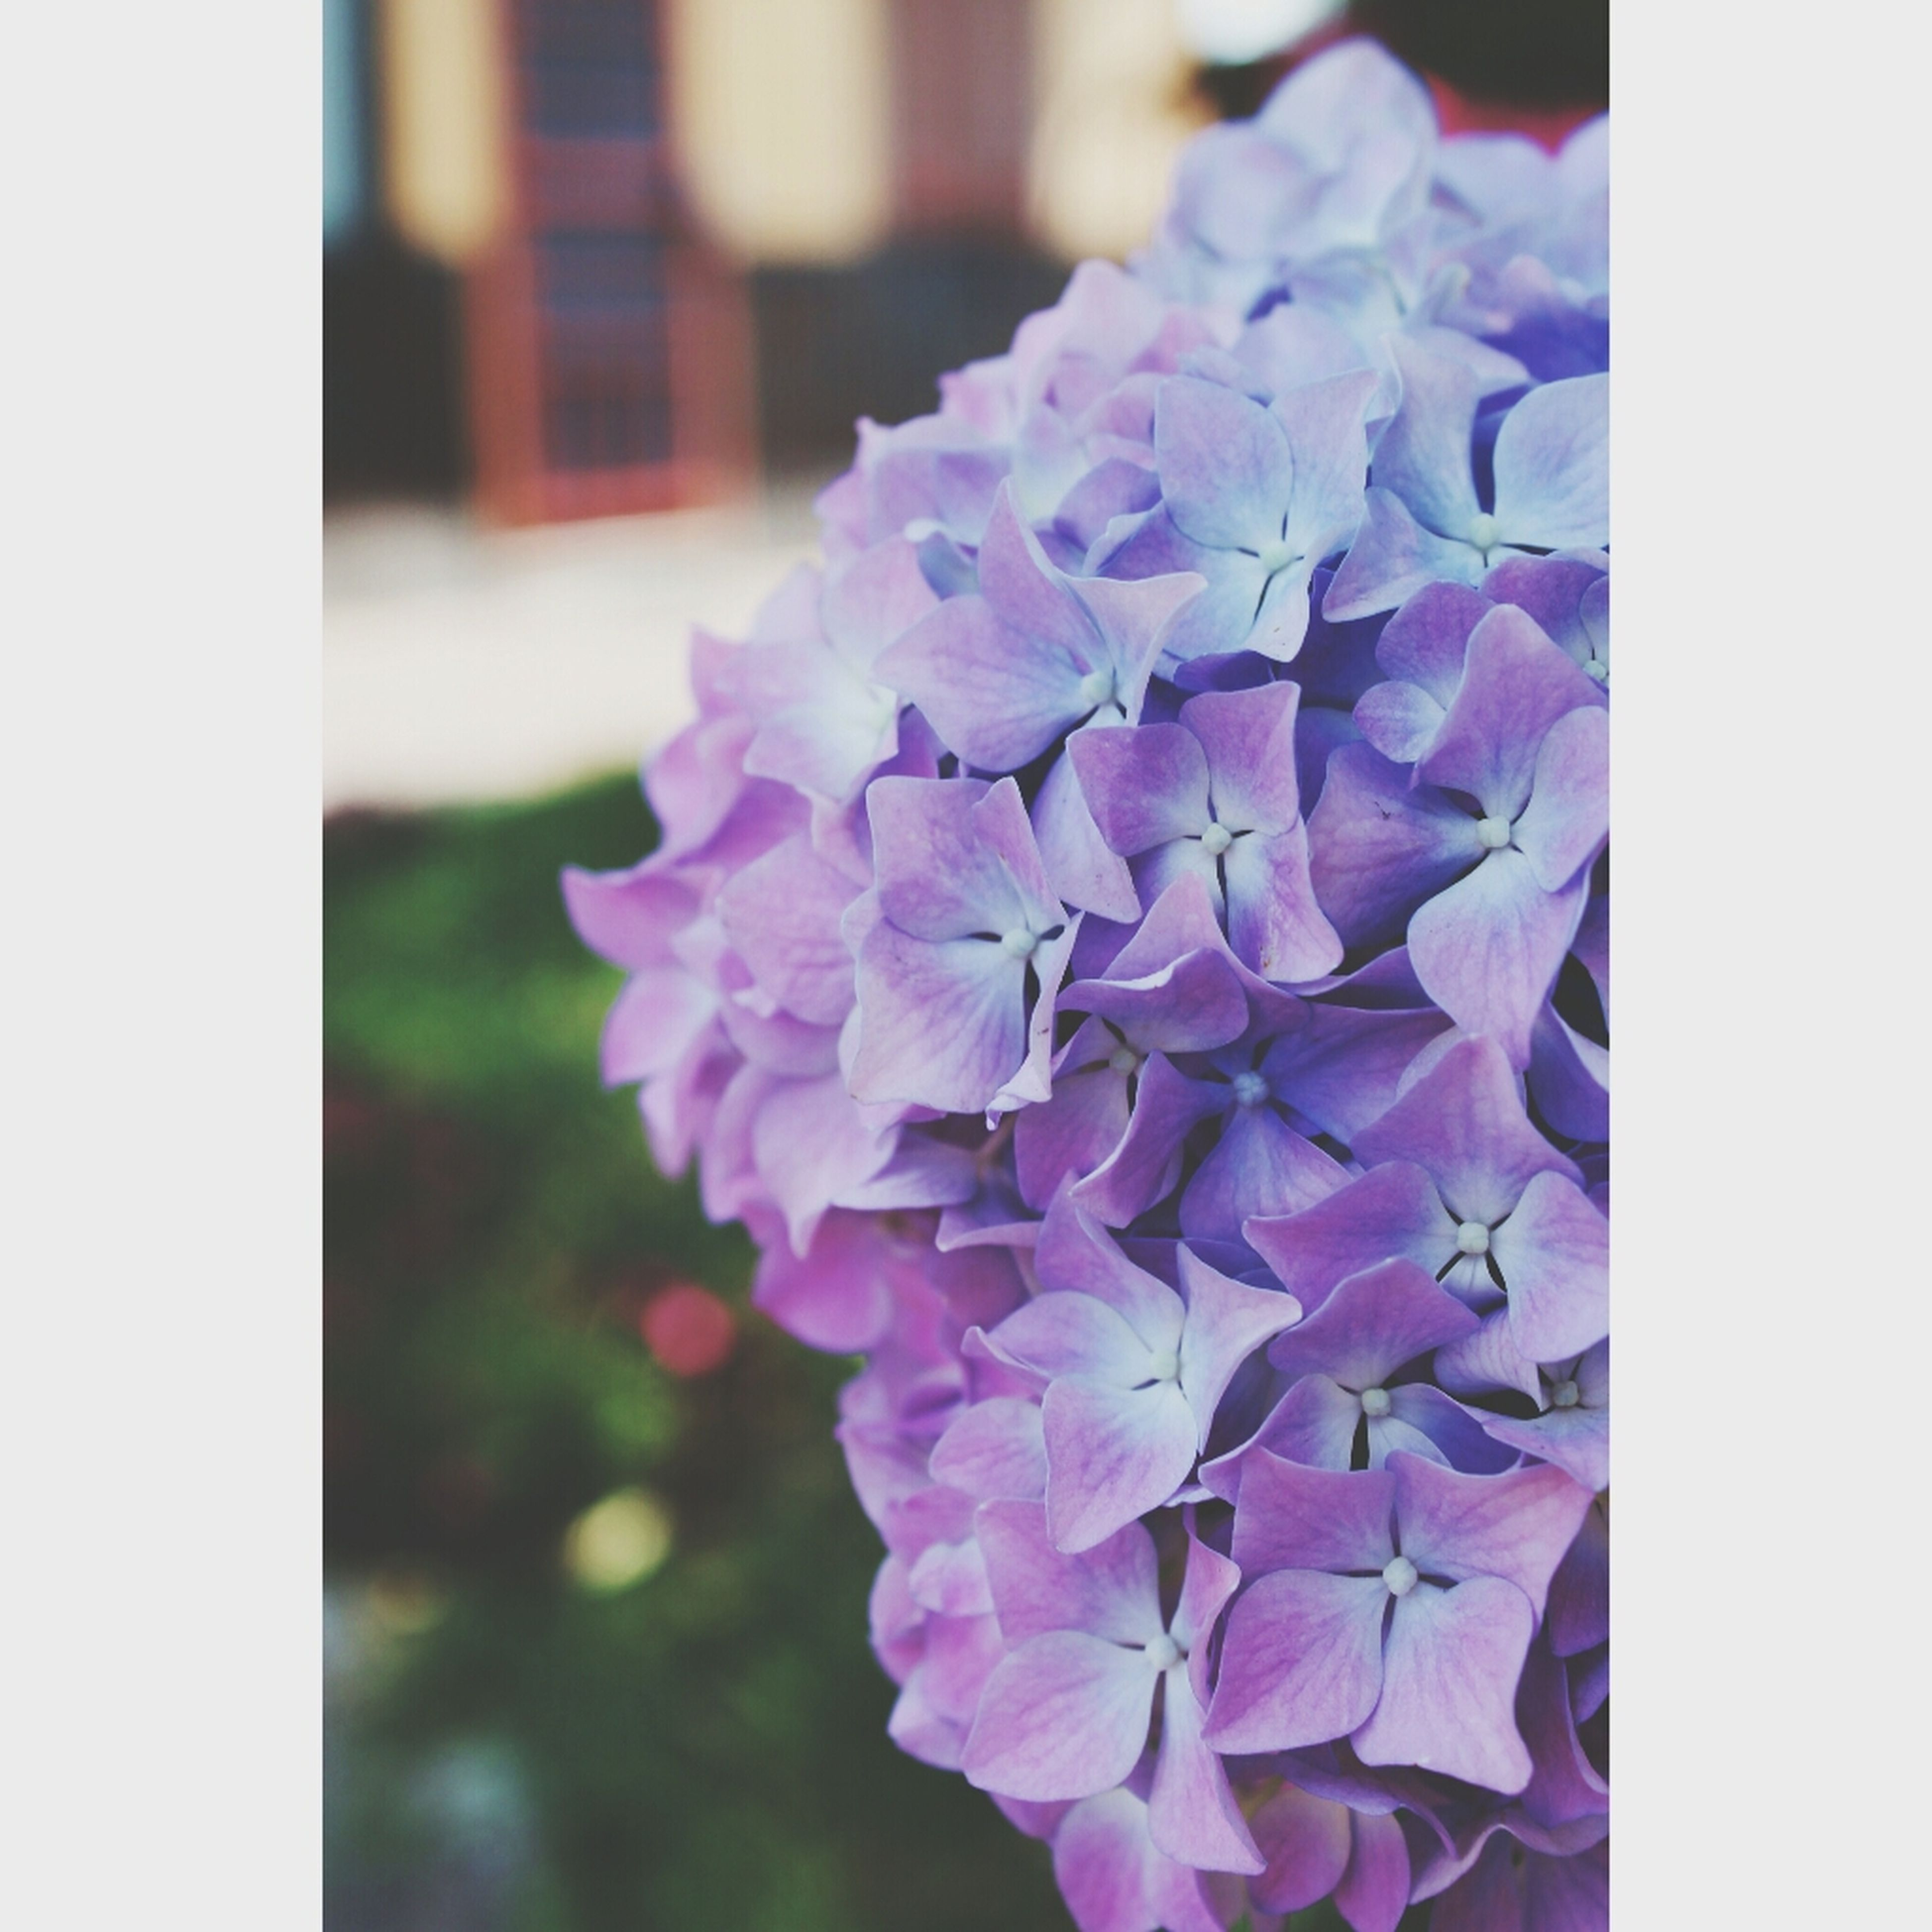 transfer print, flower, freshness, auto post production filter, fragility, petal, purple, flower head, beauty in nature, close-up, growth, focus on foreground, blooming, nature, selective focus, no people, in bloom, blue, plant, abundance